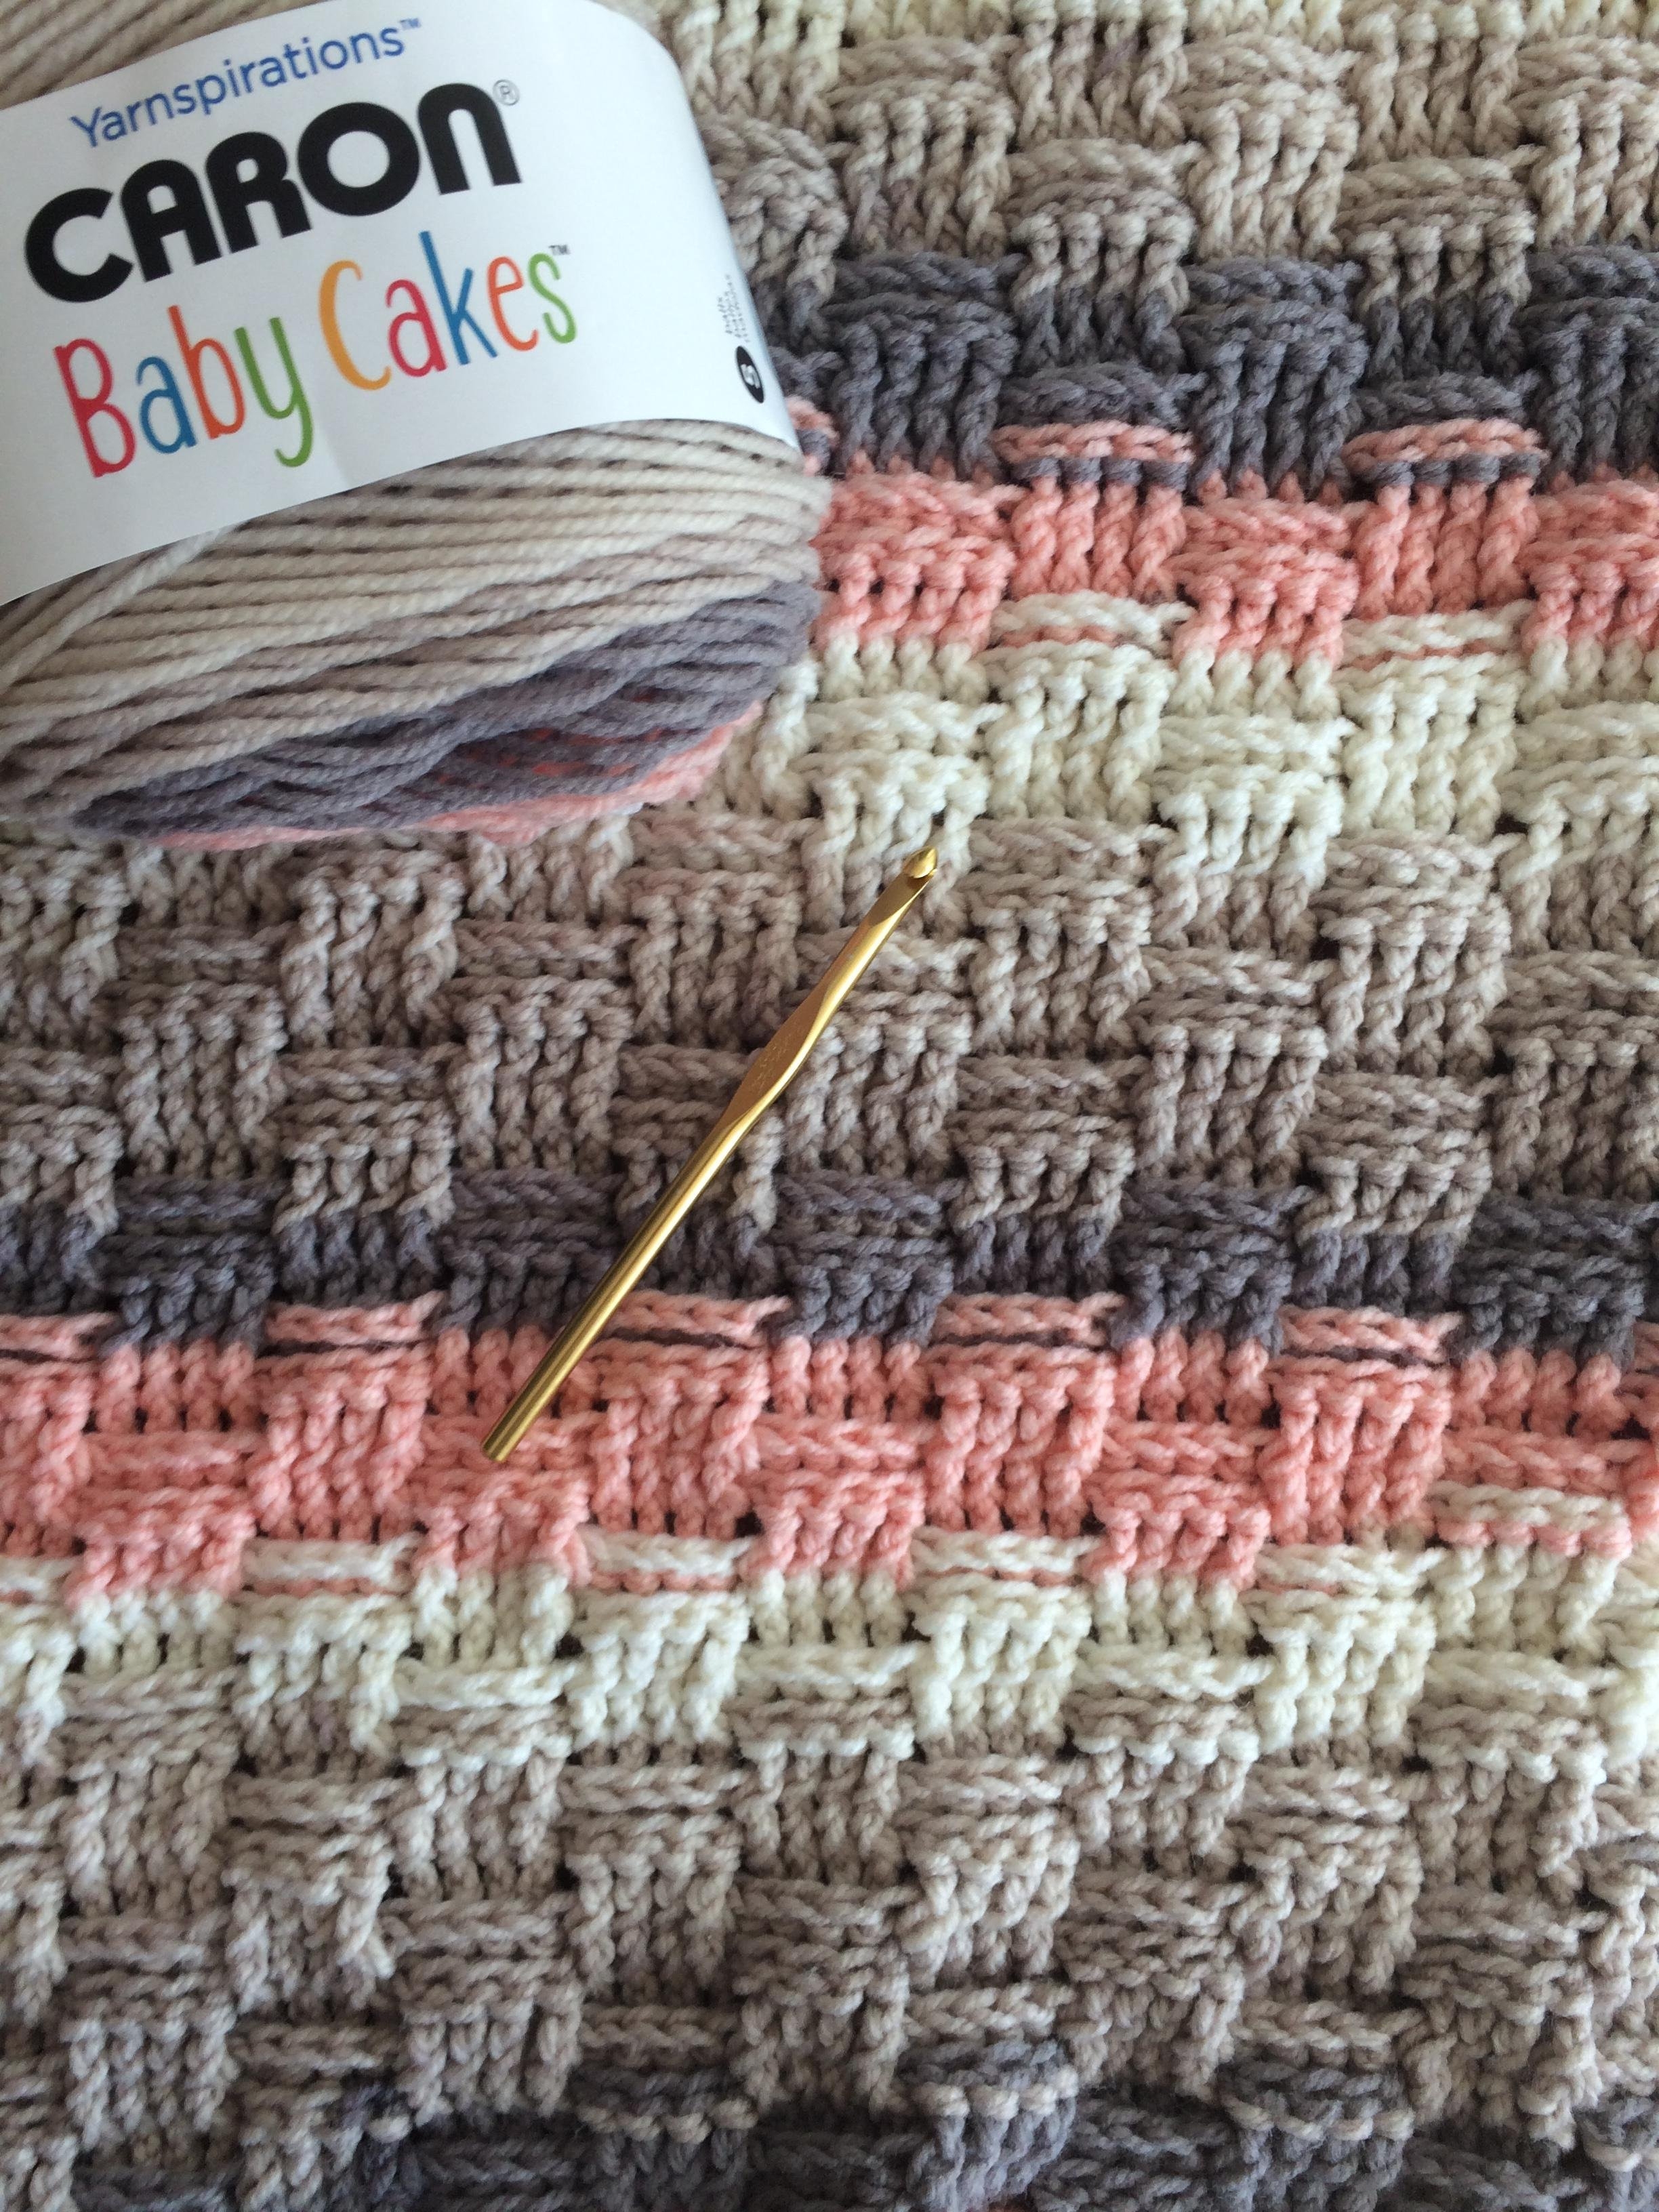 Beautiful Basketweave Blanket with Caron Baby Cakes In Dreamy Peach Caron Big Cakes Crochet Patterns Of Marvelous 50 Pics Caron Big Cakes Crochet Patterns